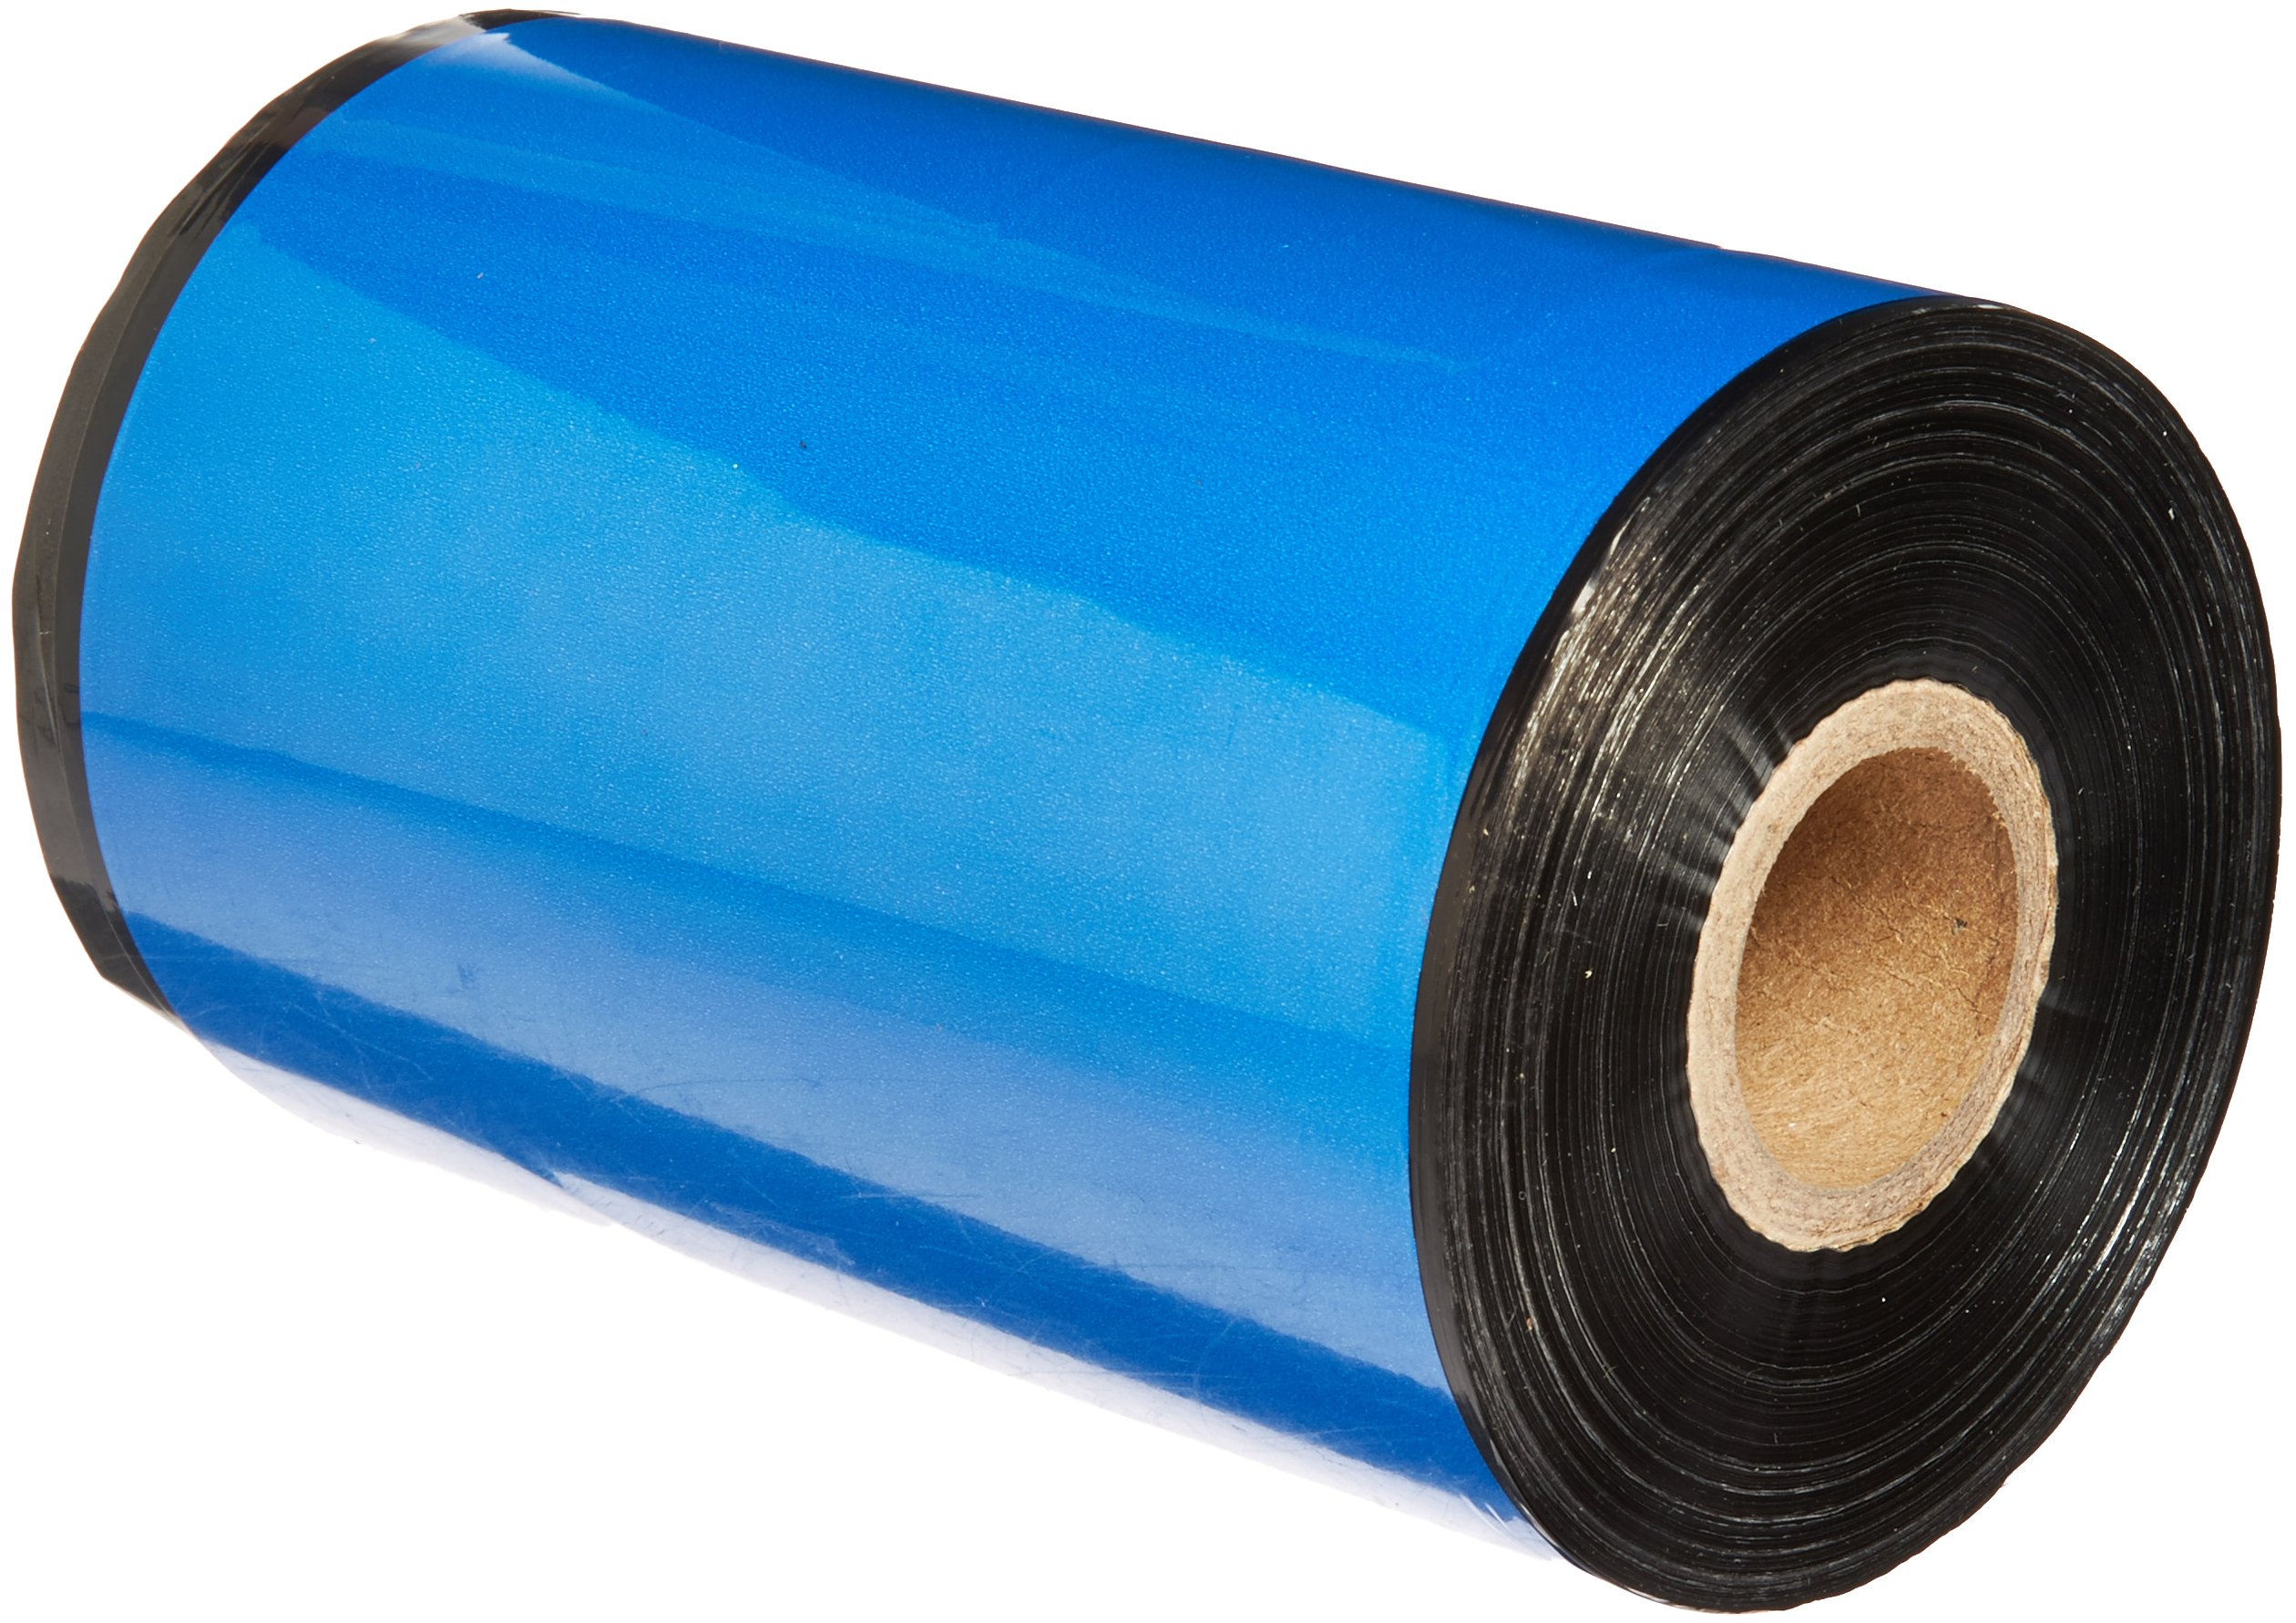 Smith Corona Z04331476WBX 4.33'' X 1476' Zebra Style Thermal Wax Ribbon 24 Rolls Per Box by Smith Corona